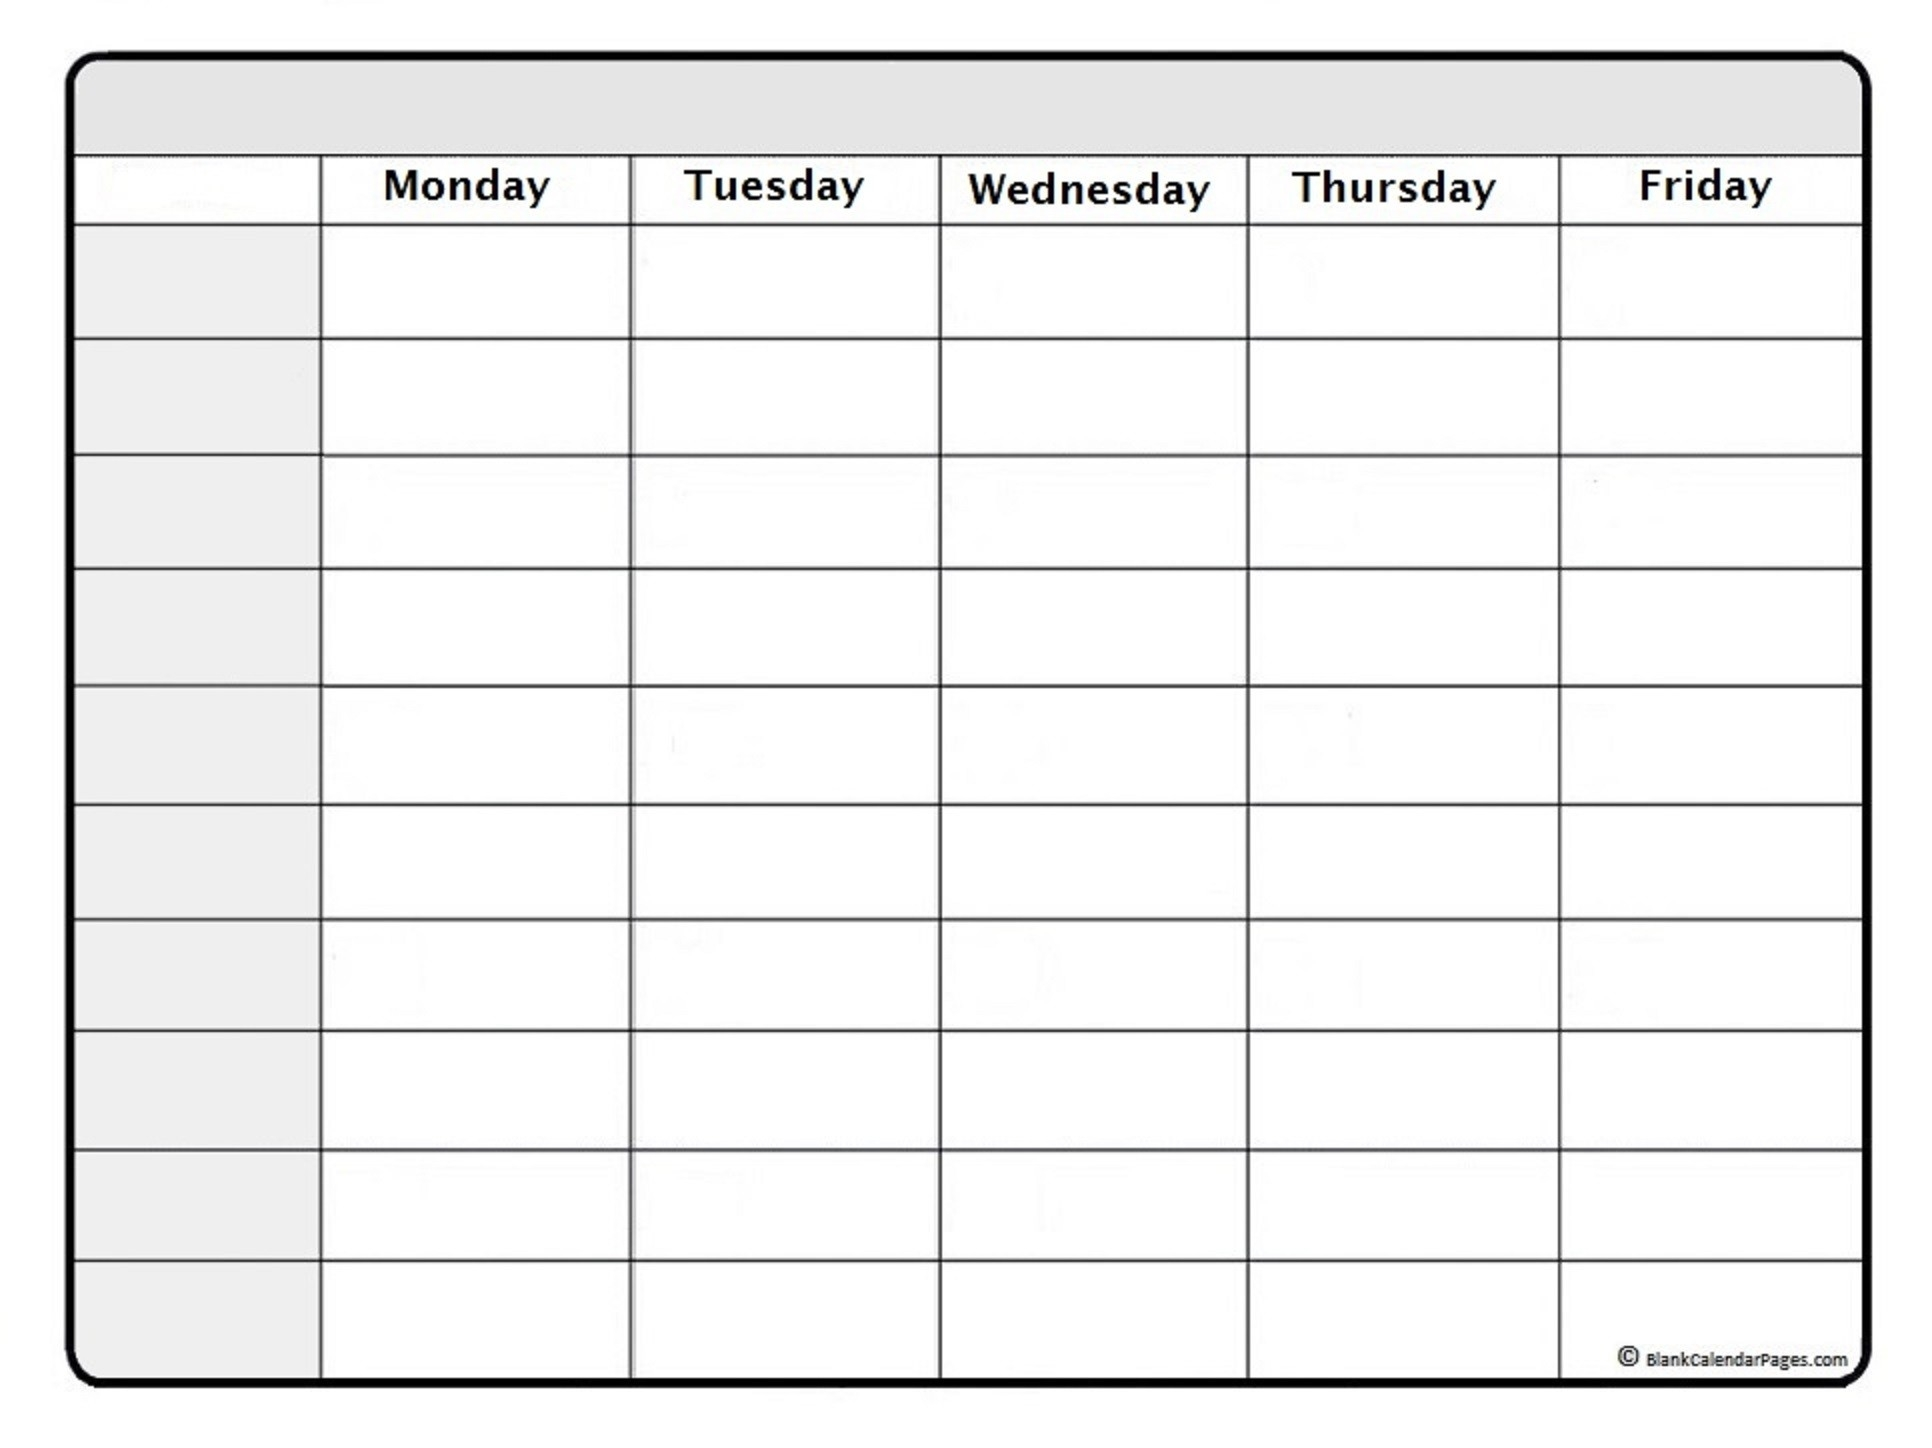 December 2020 Weekly Calendar | December 2020 Weekly  Printable Day Calendar